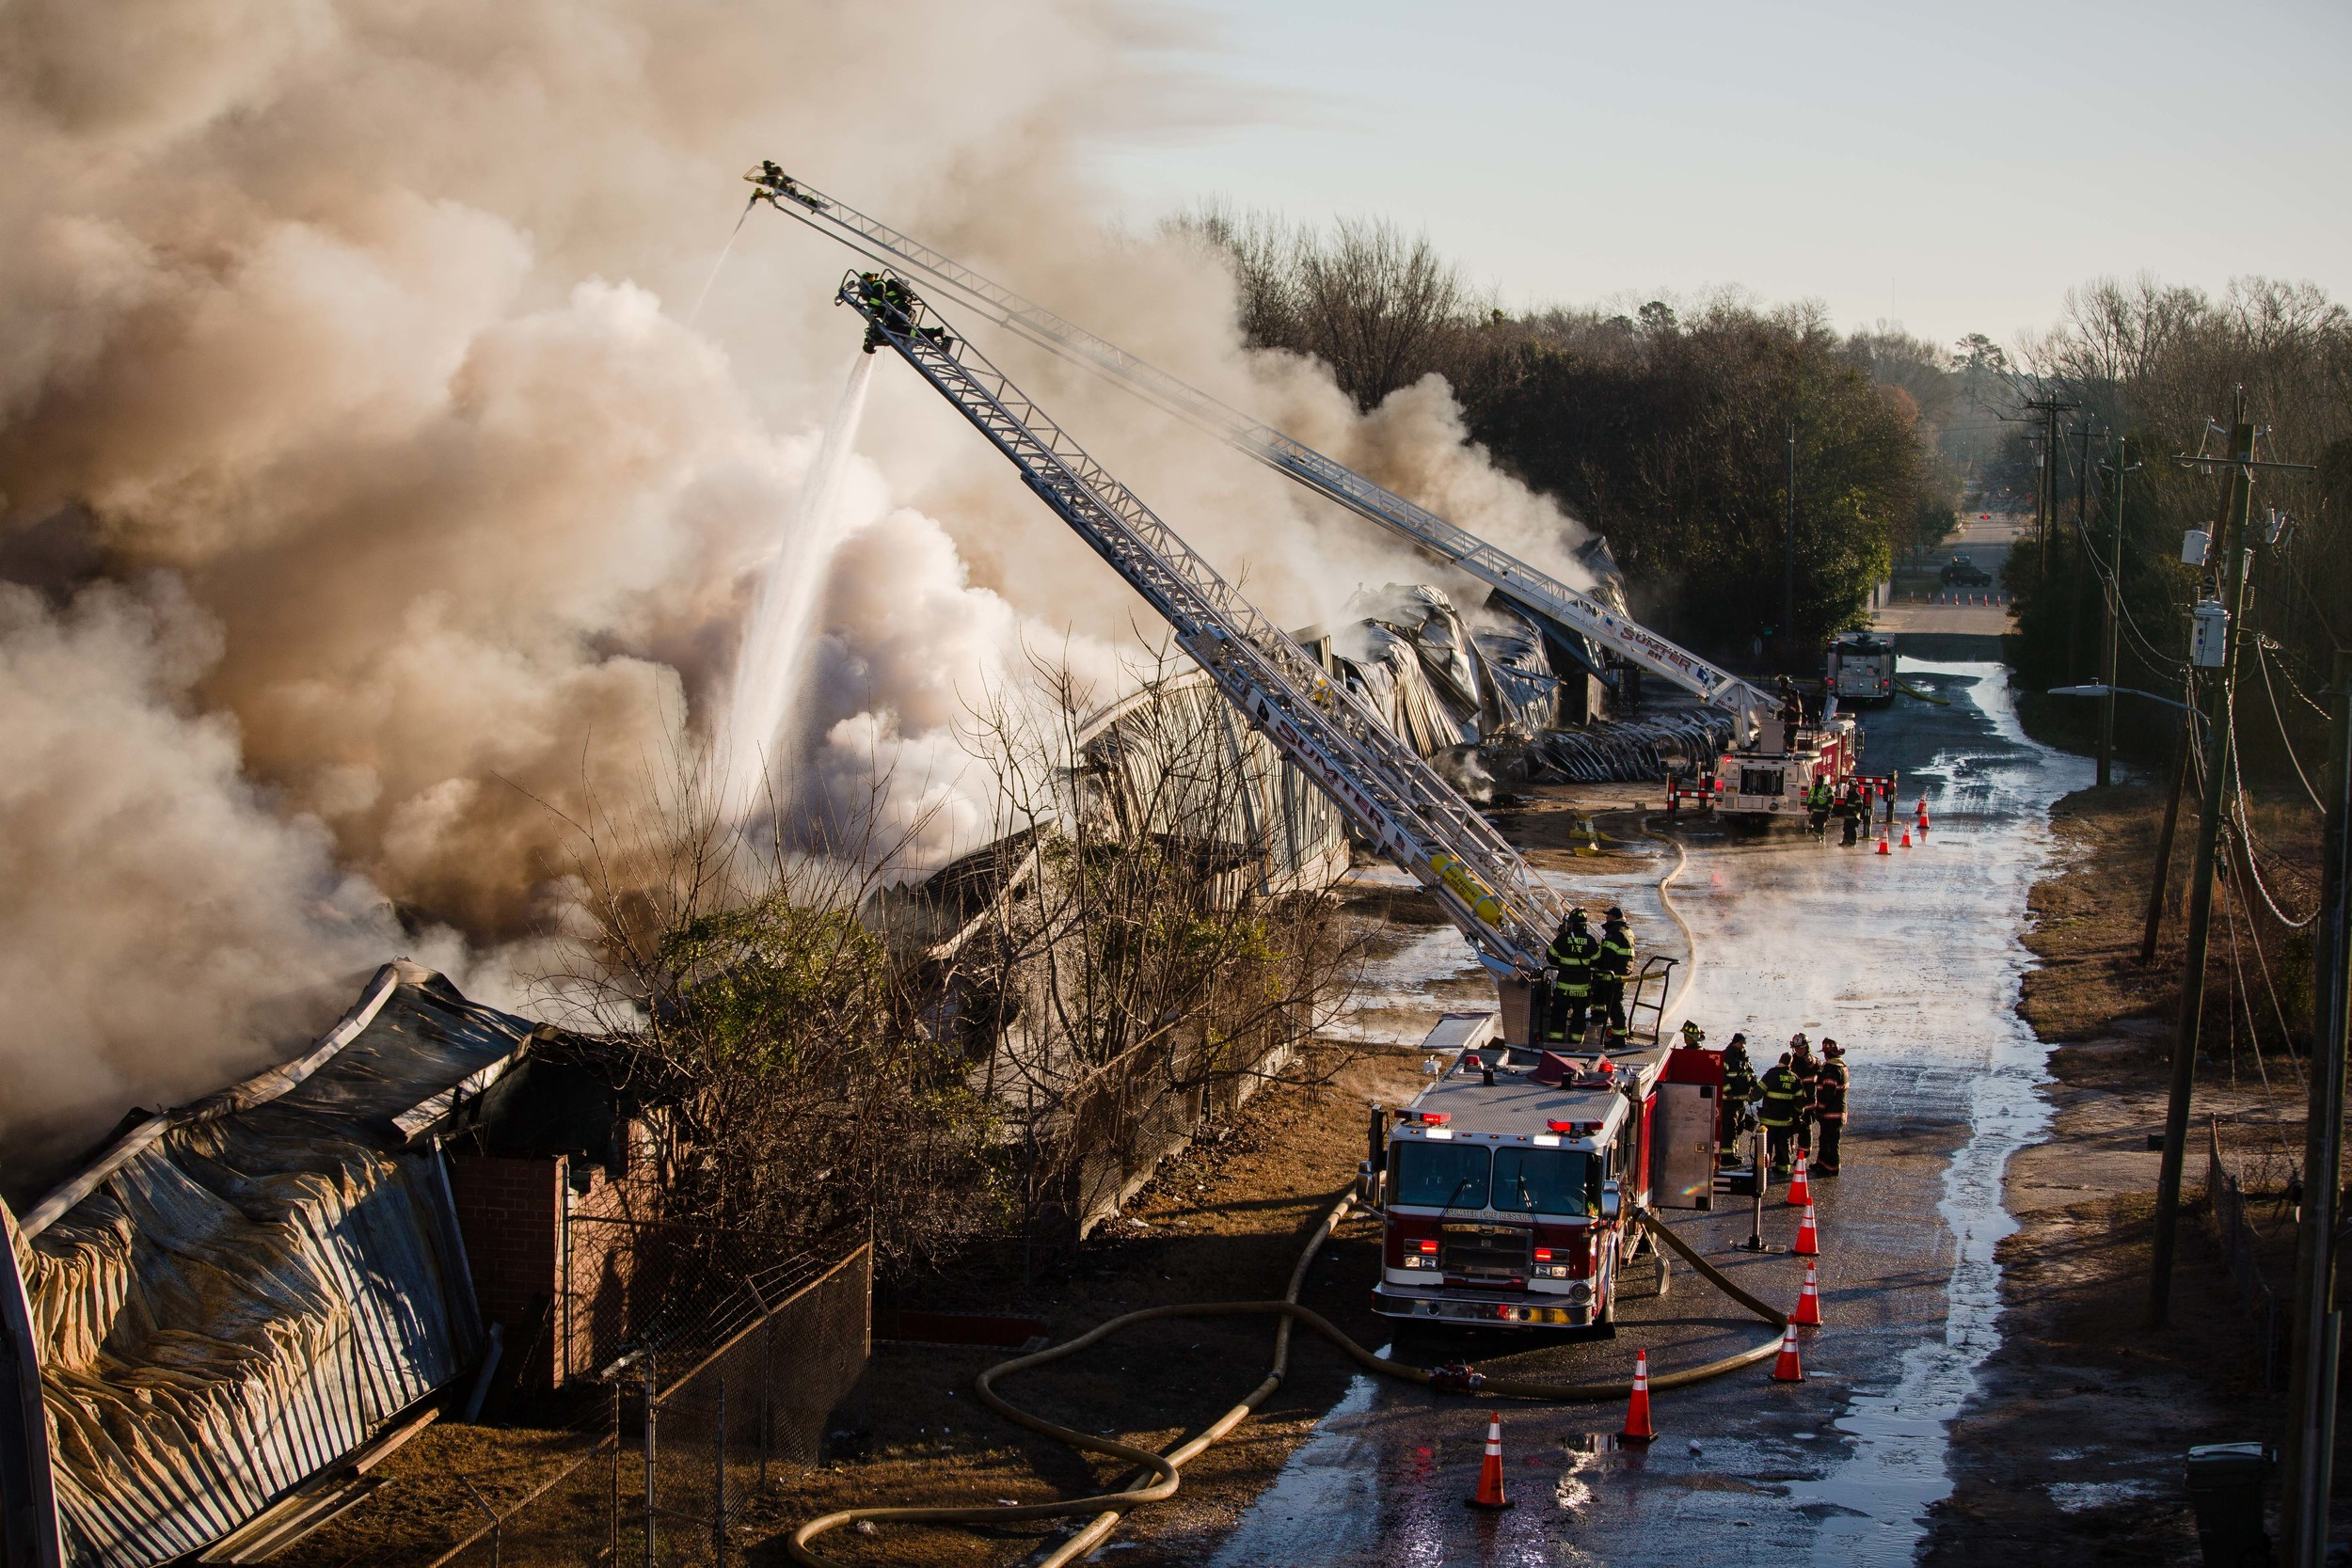 Firefighters dump water on a warehouse filled with carpet fibers and plastic Friday morning. A total of 90 firefighters worked the blaze throughout the day.